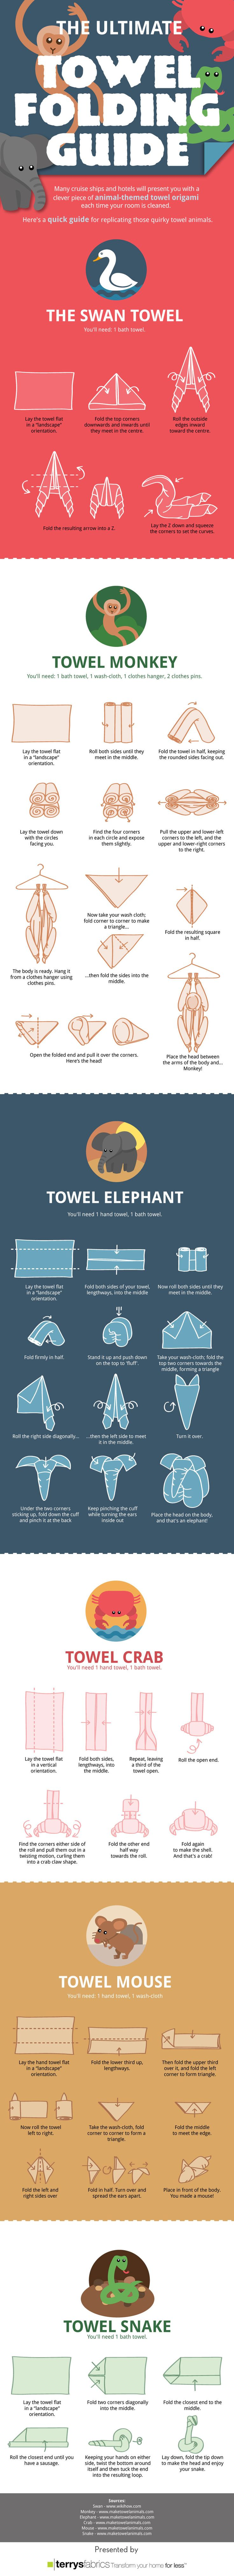 Infografía #CómoHacer 6 animales con toallas: 1.Cisne, 2.Mono, 3.Elefante, 4.Cangrejo, 5.Ratoncito, 6.Serpiente • The Ultimate Towel Folding Guide #DIY: 1.Swan, 2.Monkey, 3.Elephant, 4.Crab, 5.Mouse, 6.Snake | from Terry Fabrics